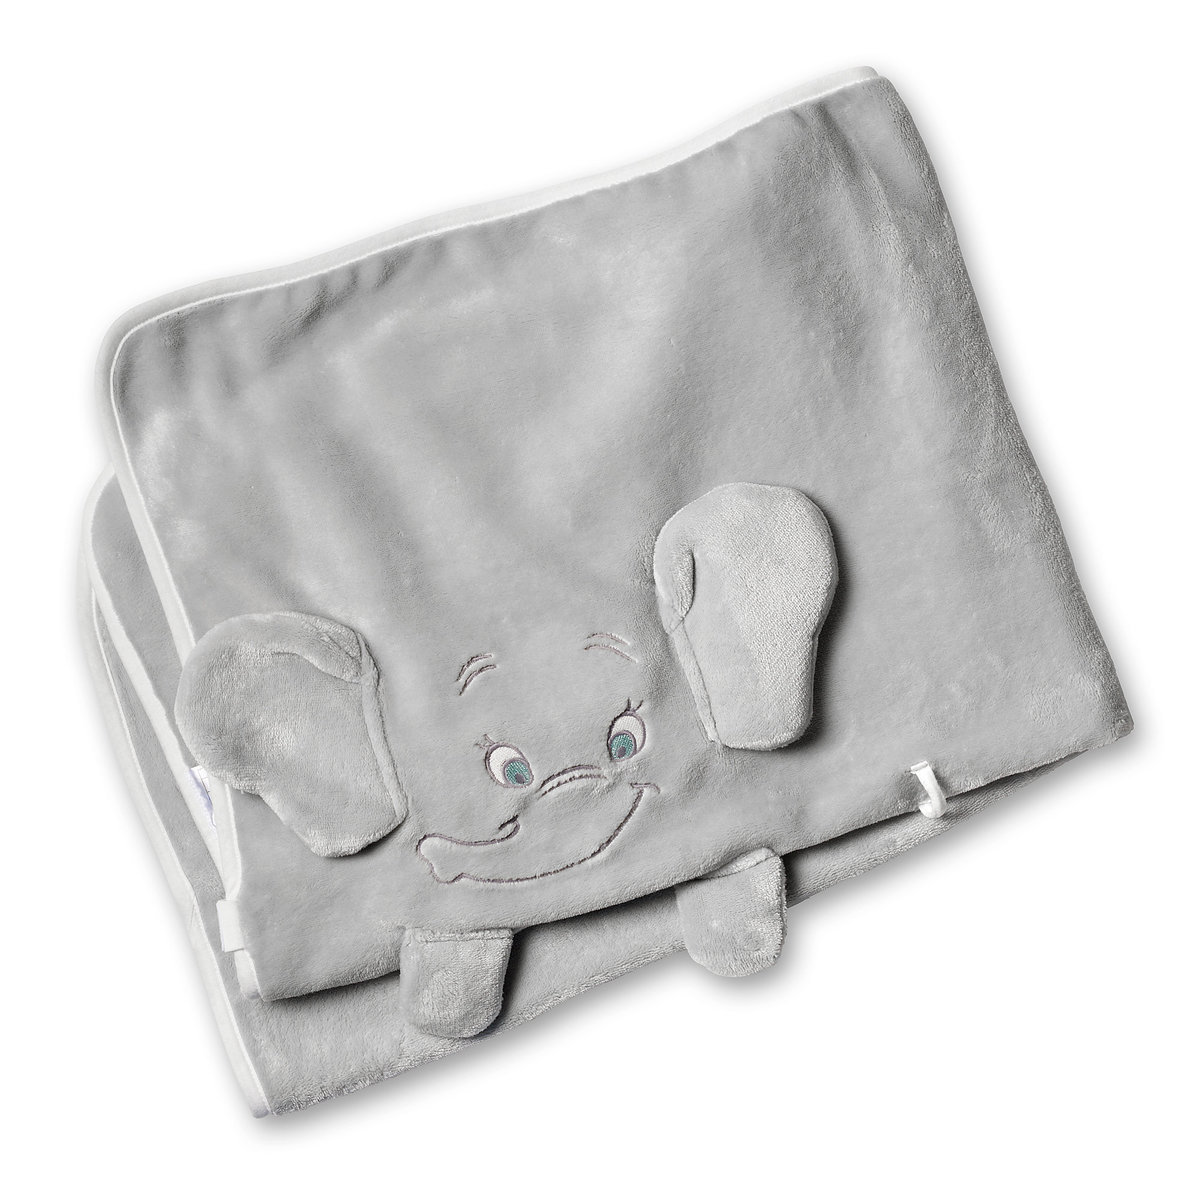 ◎送料込み◎  Dumbo Plush Blanket for Baby